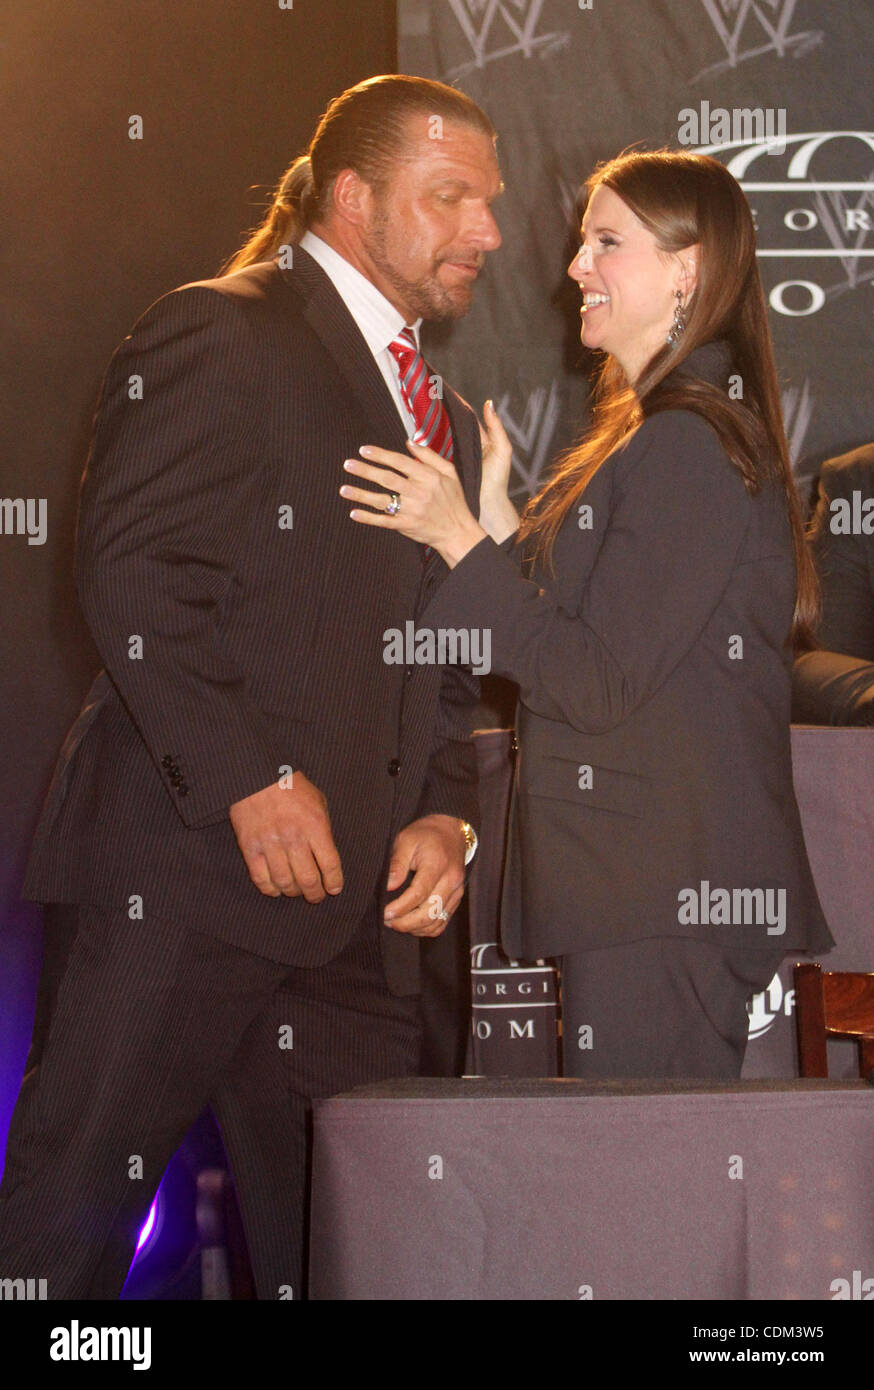 Mar. 30, 2011 - New York, New York, U.S. - WWE Superstar TRIPLE H and STEPHANIE MCMAHON attend the WrestleMania - Stock Image